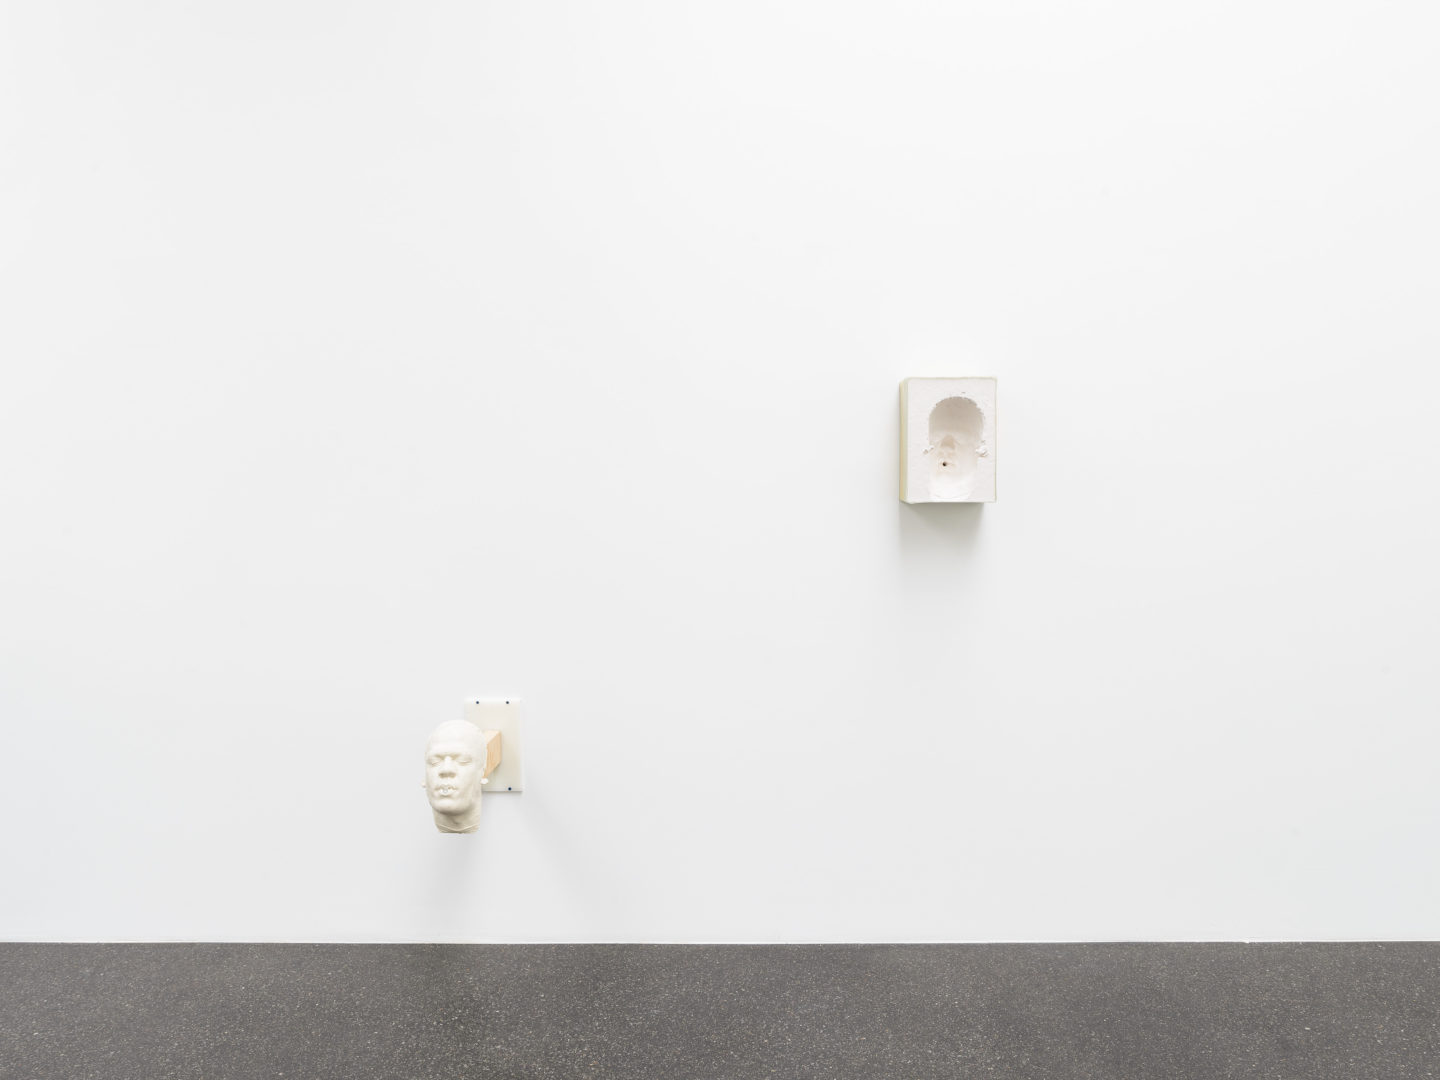 """Exhibition View Florian Germann """"Ringer"""" at Galerie Gregor Staiger / Photo and Courtesy: Galerie Gregor Staiger, Zürich"""